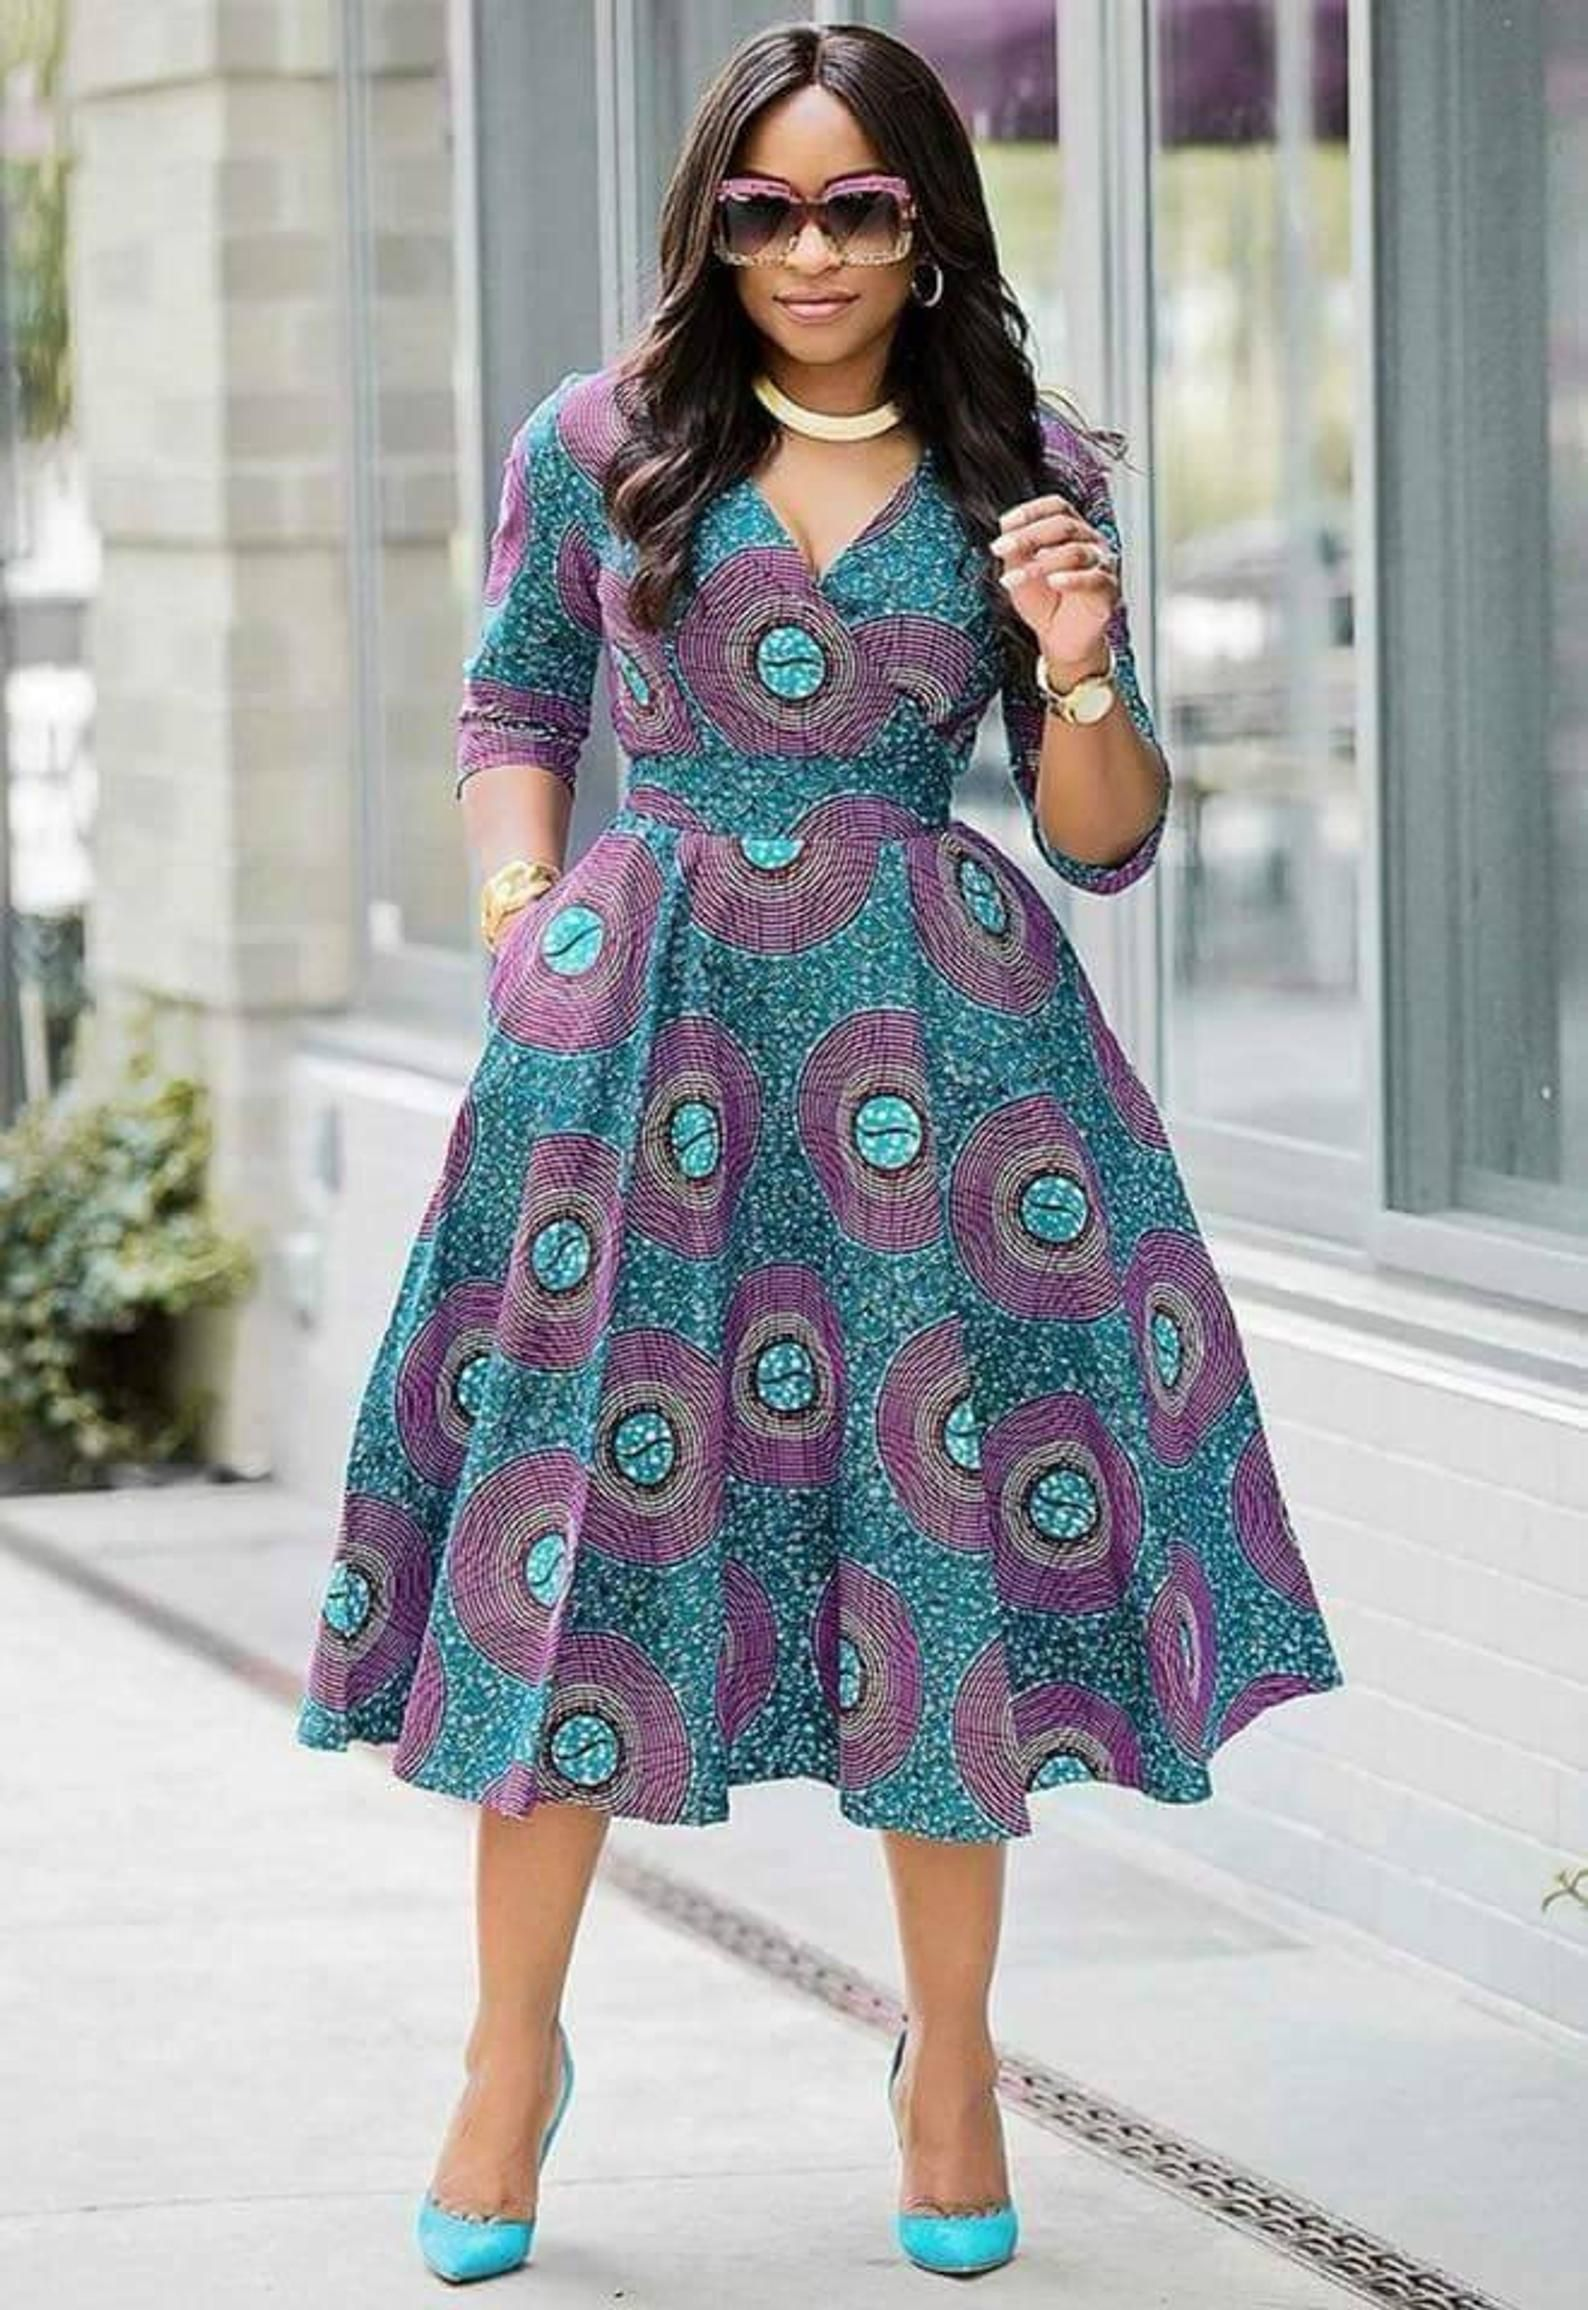 African Ankara dress, African Clothing for Woman, Midi Dress, Dress With Pockets, African Print Dress,dashiki print, vintage clothing,sexy